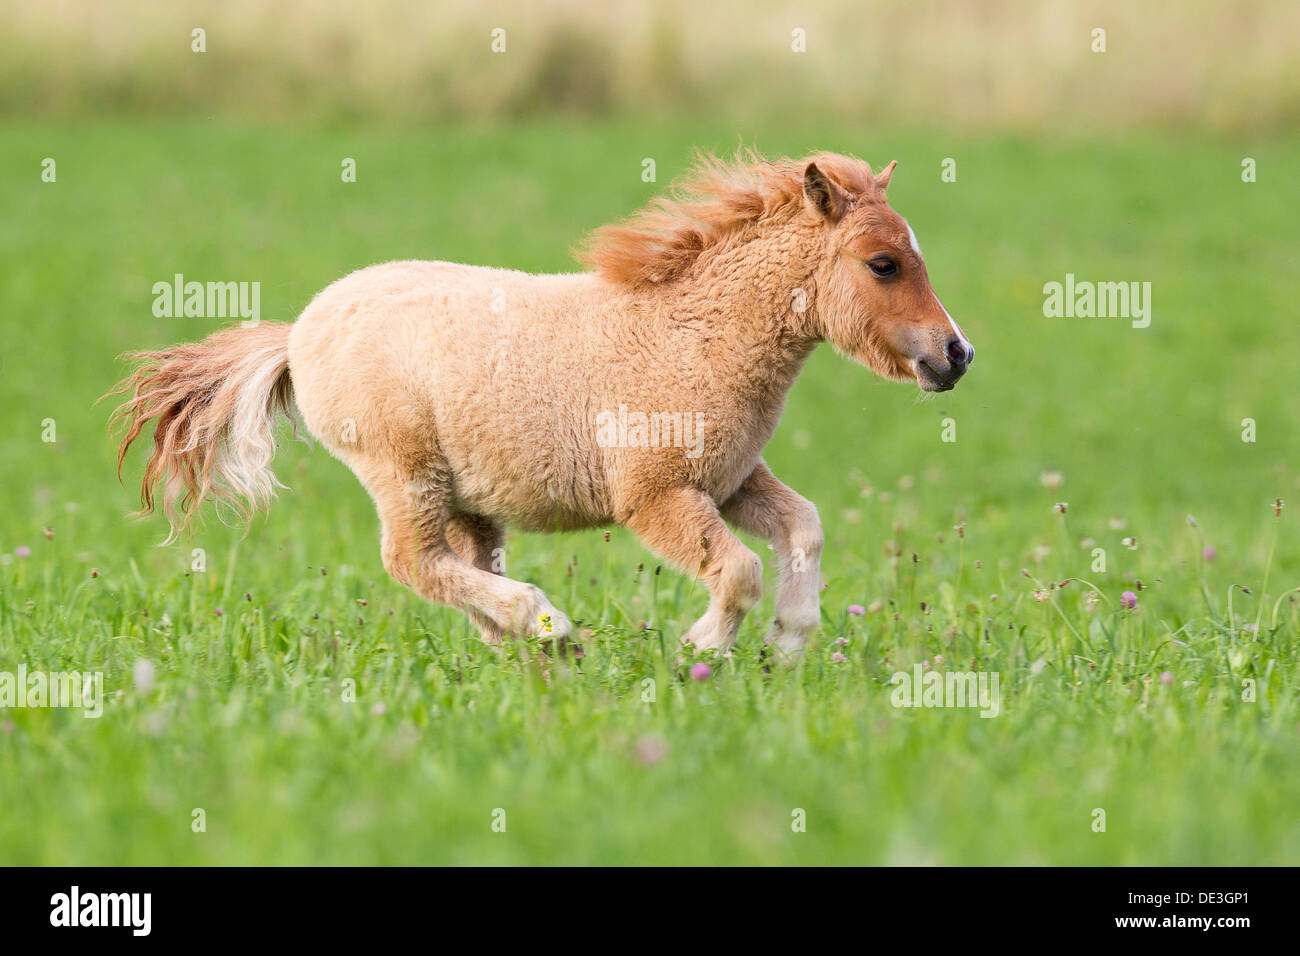 miniature shetland pony foal galloping stockfotos miniature shetland pony foal galloping. Black Bedroom Furniture Sets. Home Design Ideas